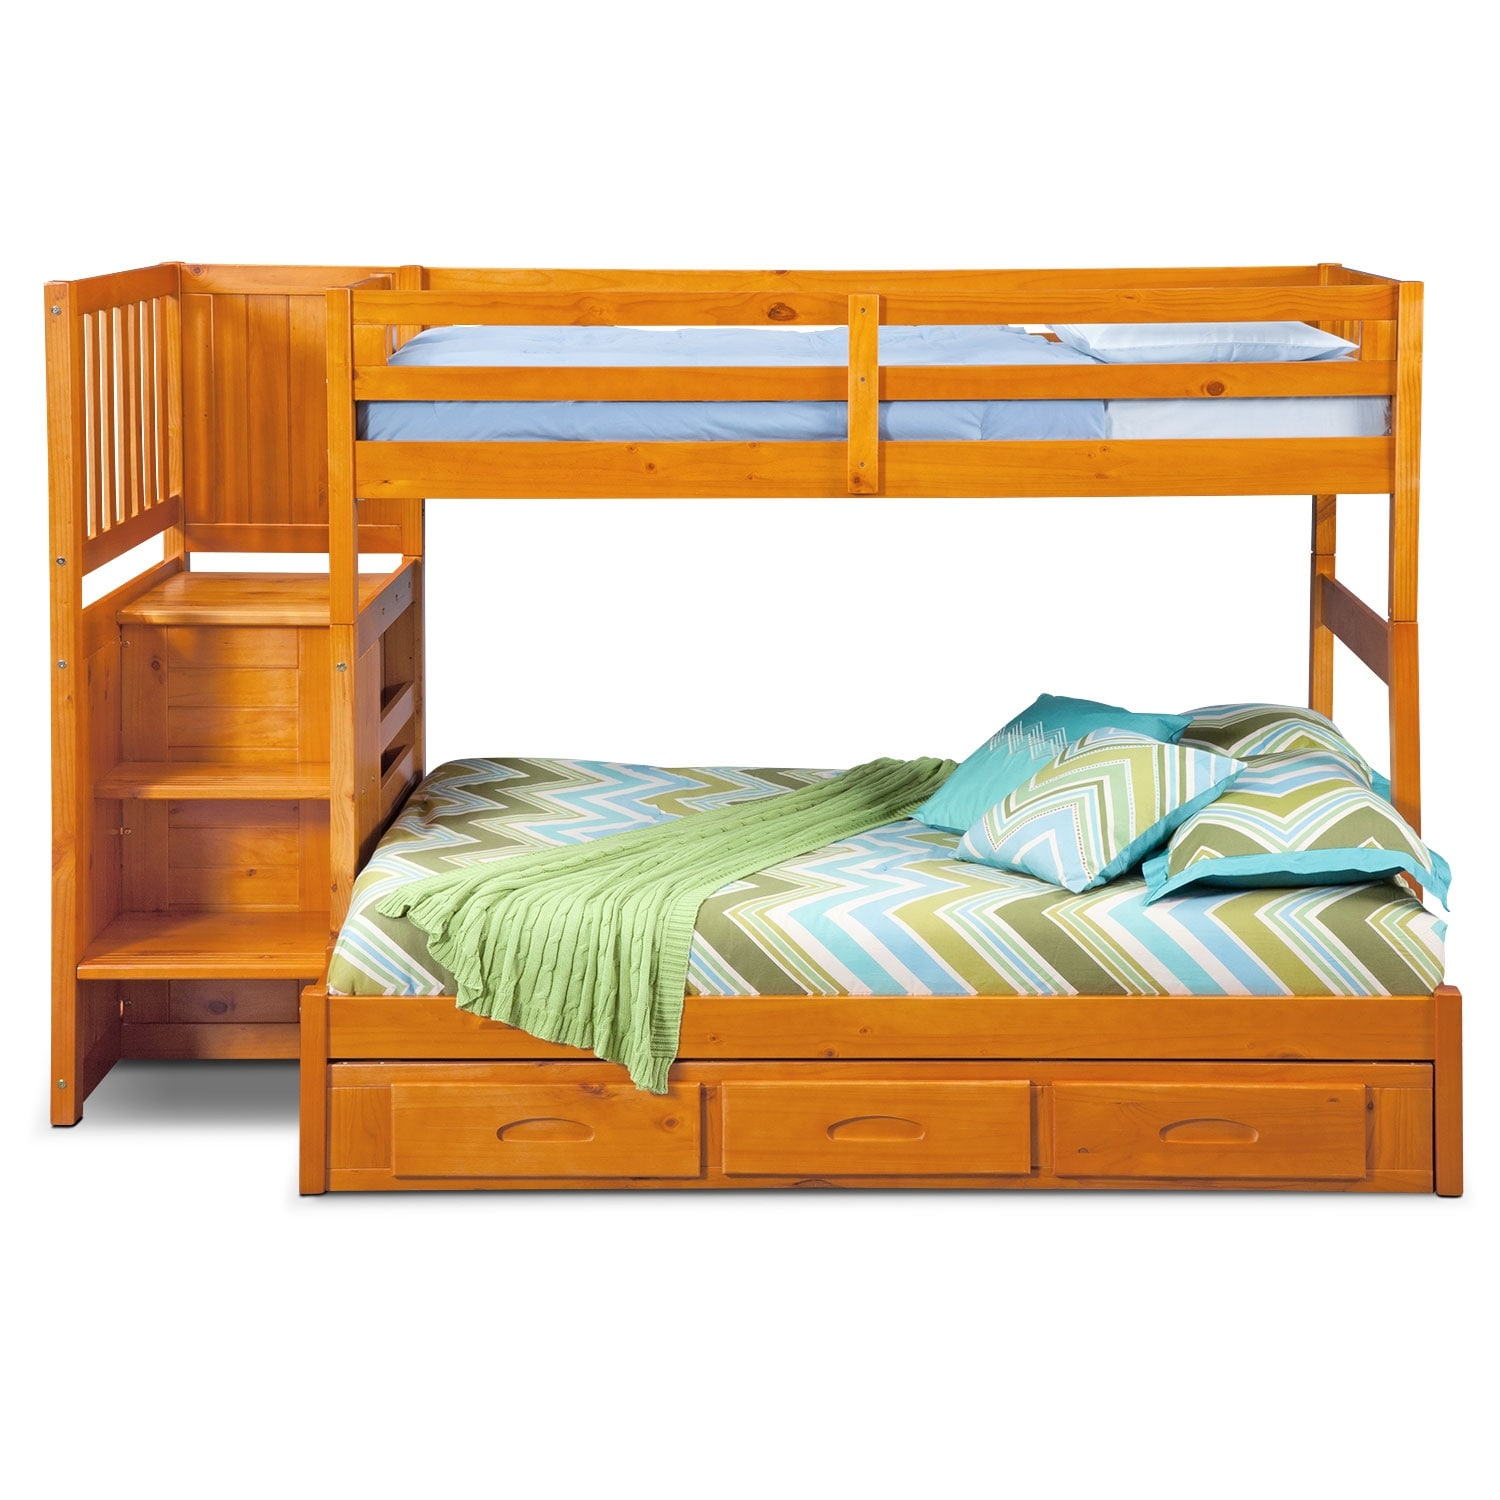 Ranger twin over full bunk bed with storage stairs underbed drawers pine value city furniture - Bunkbeds with drawers ...